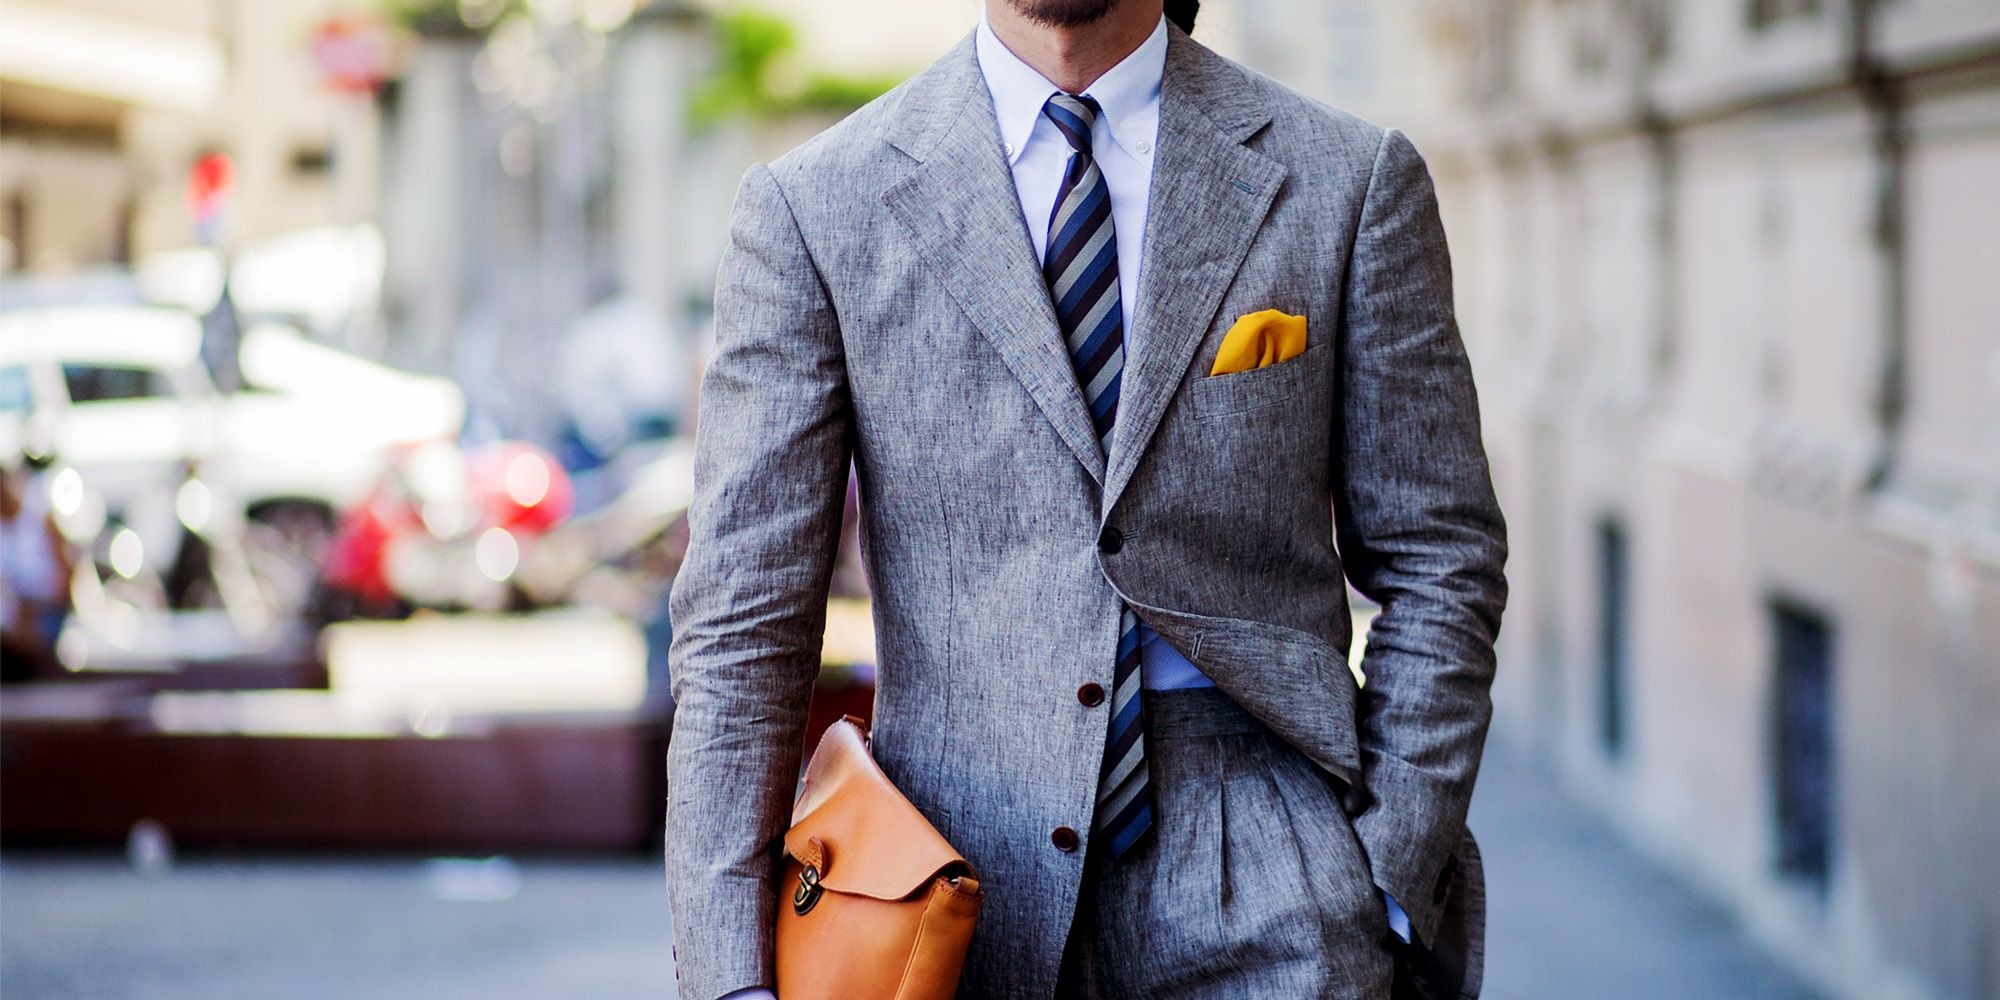 e4cf02d7c 12 Ways to Get a Stylish Suit on the Cheap